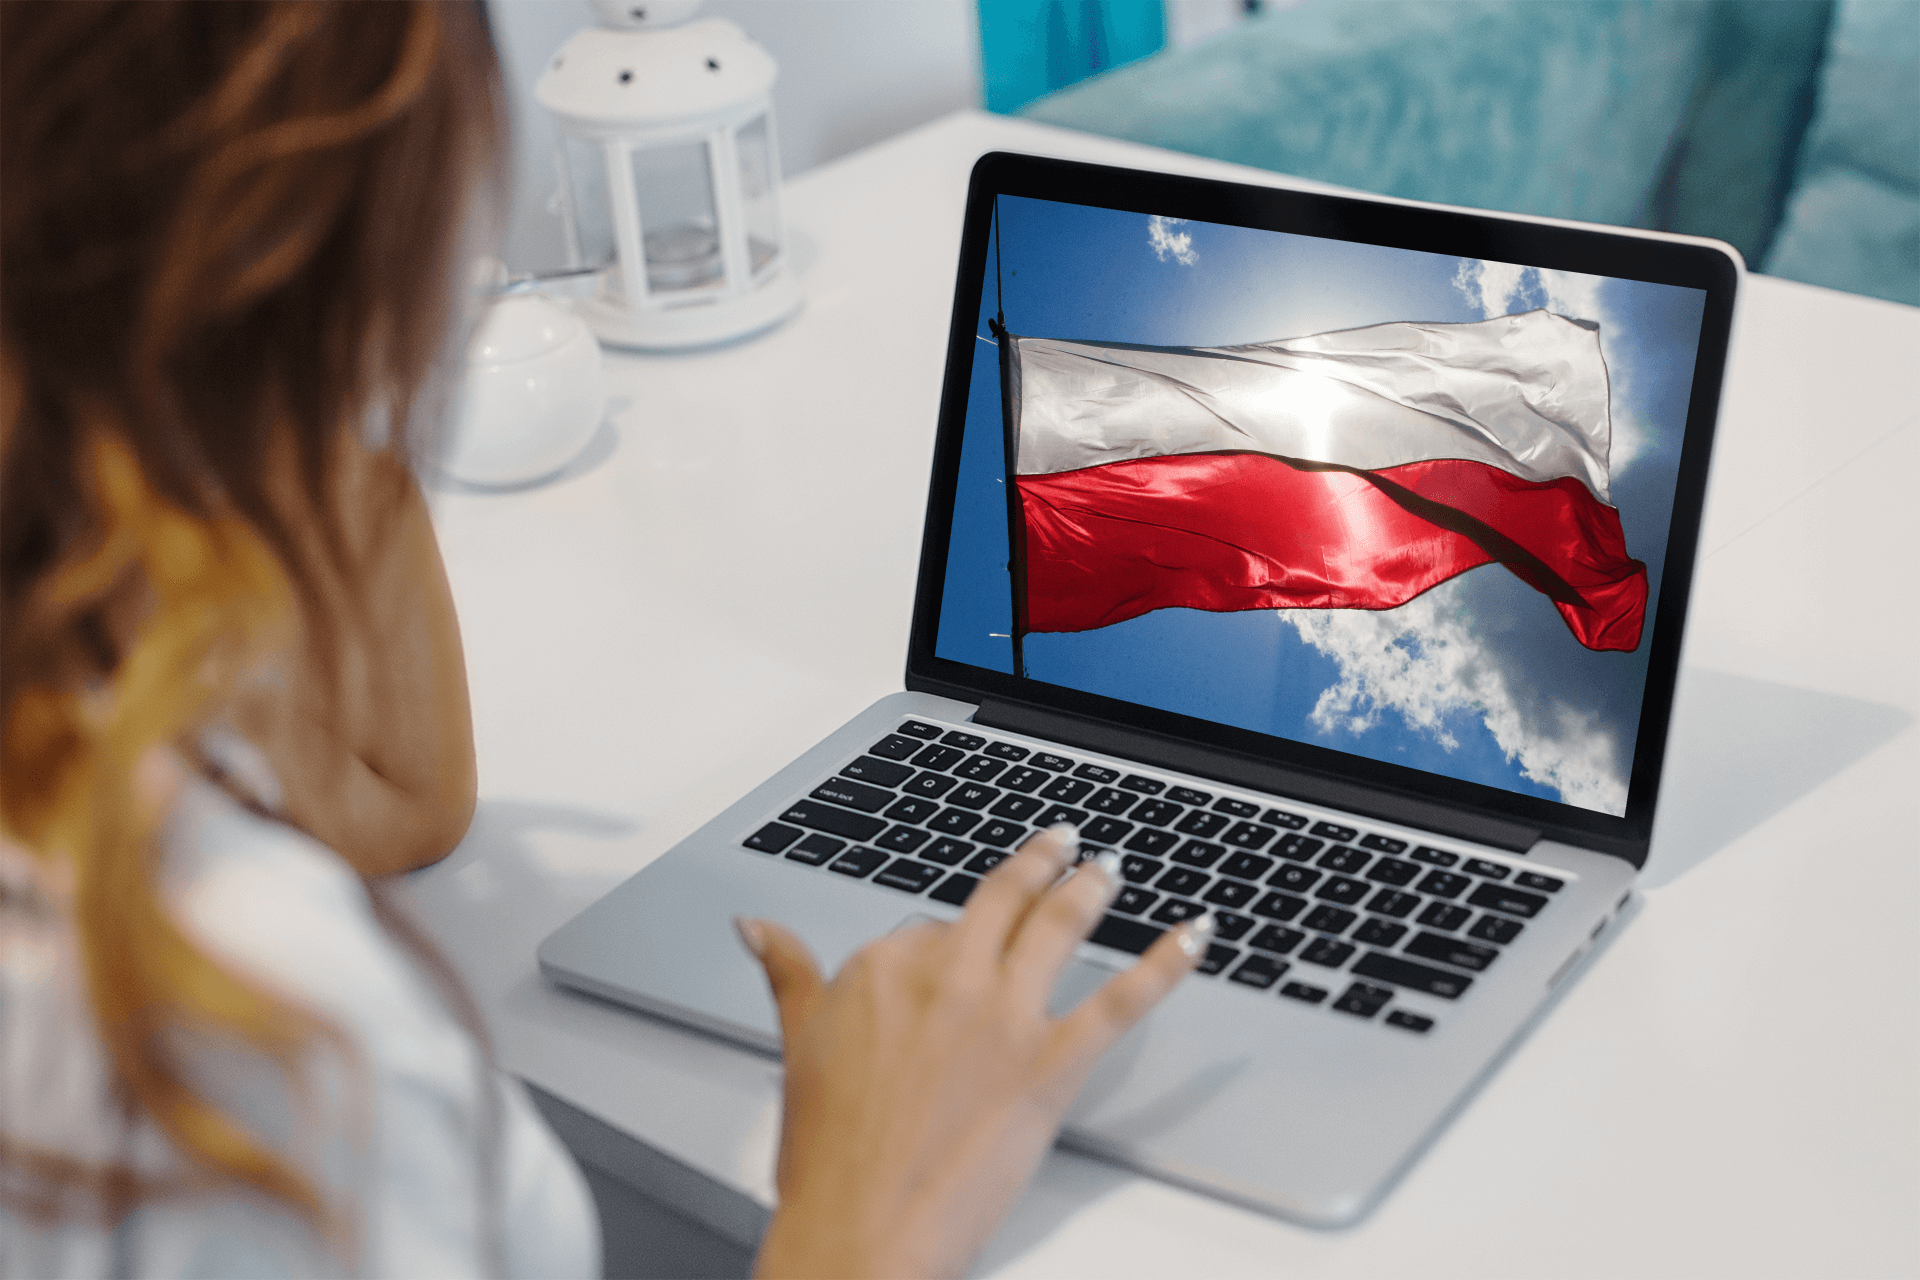 Bank Account in Poland remotely